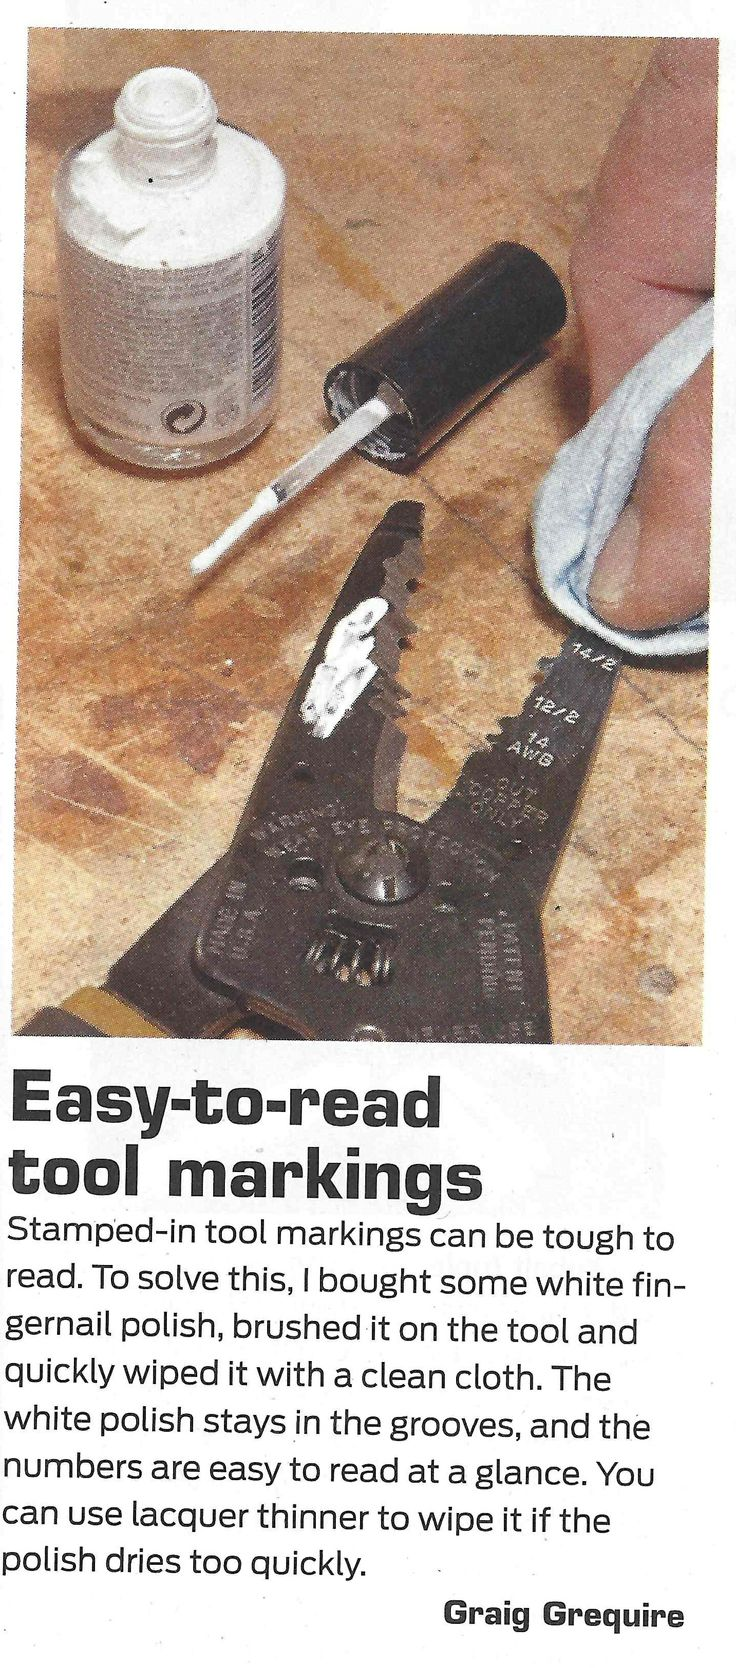 Family Handyman Magazine: Easy to read markings on tools